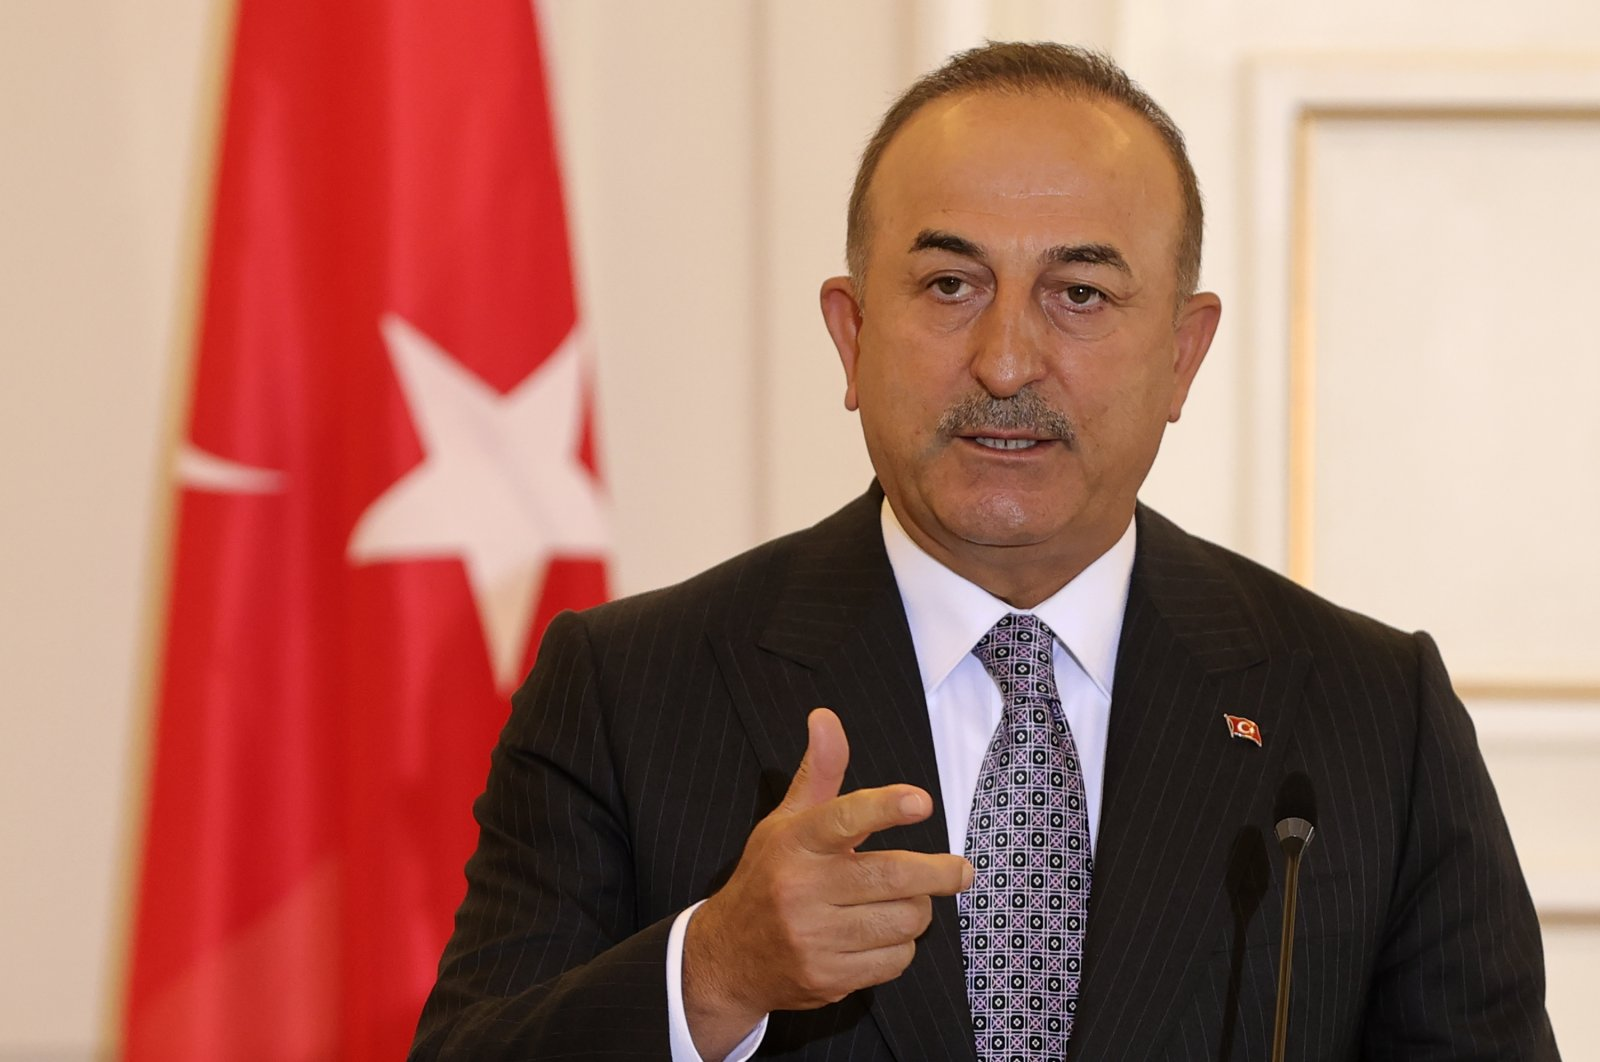 Foreign Minister Mevlüt Çavuşoğlu speaks at a joint news conference with Greek counterpart Nikos Dendias in Athens, Greece, May 31, 2021. (AA File Photo)